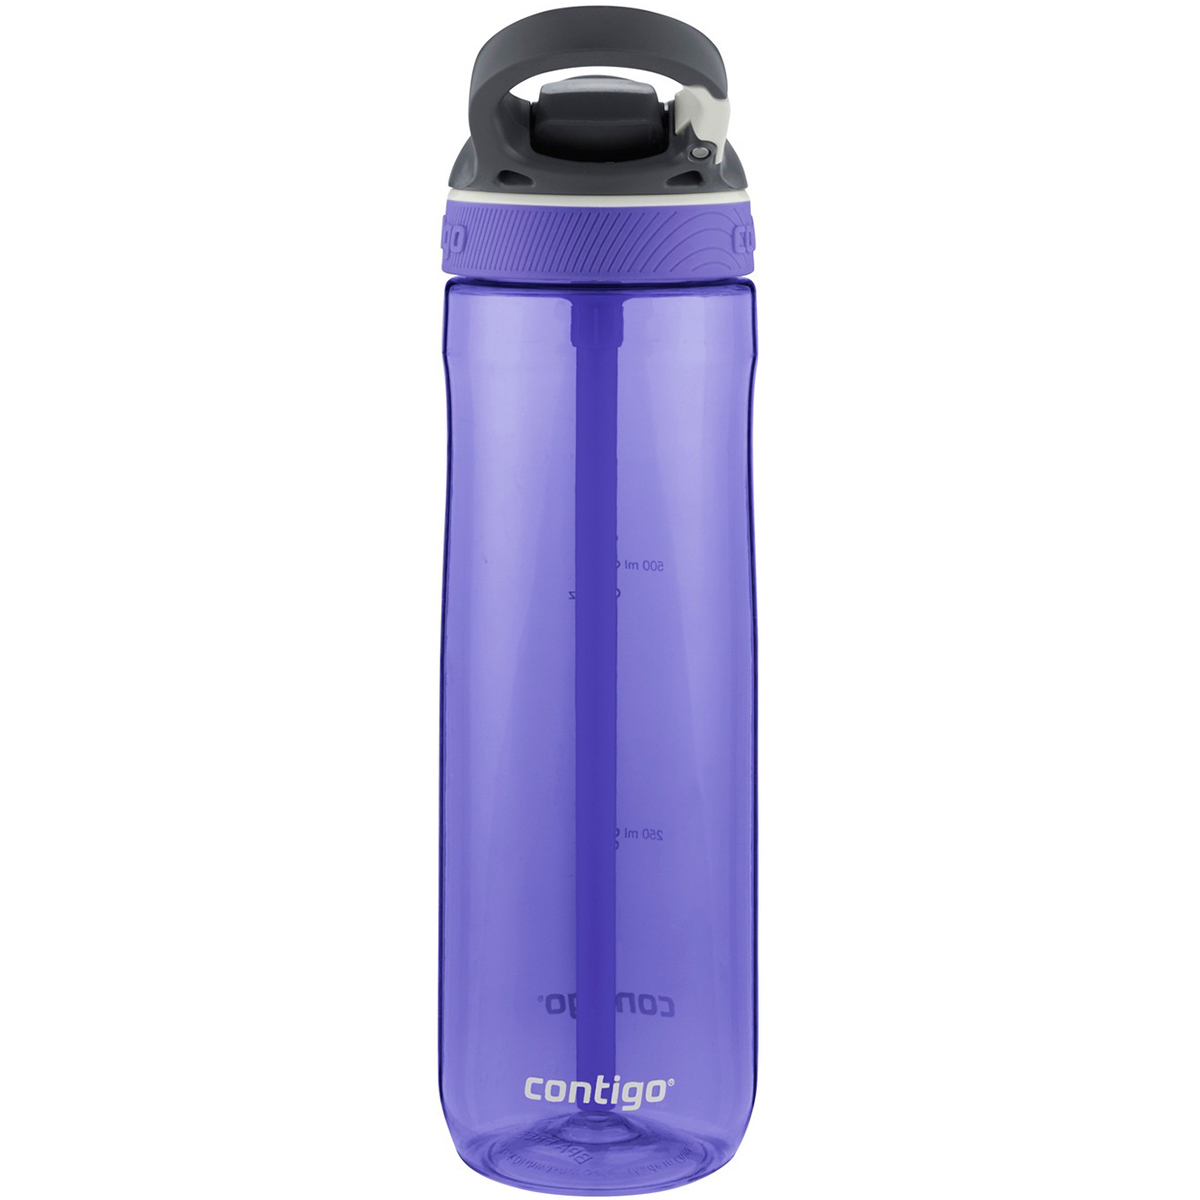 Contigo-24-oz-Ashland-Autospout-Water-Bottle miniature 11